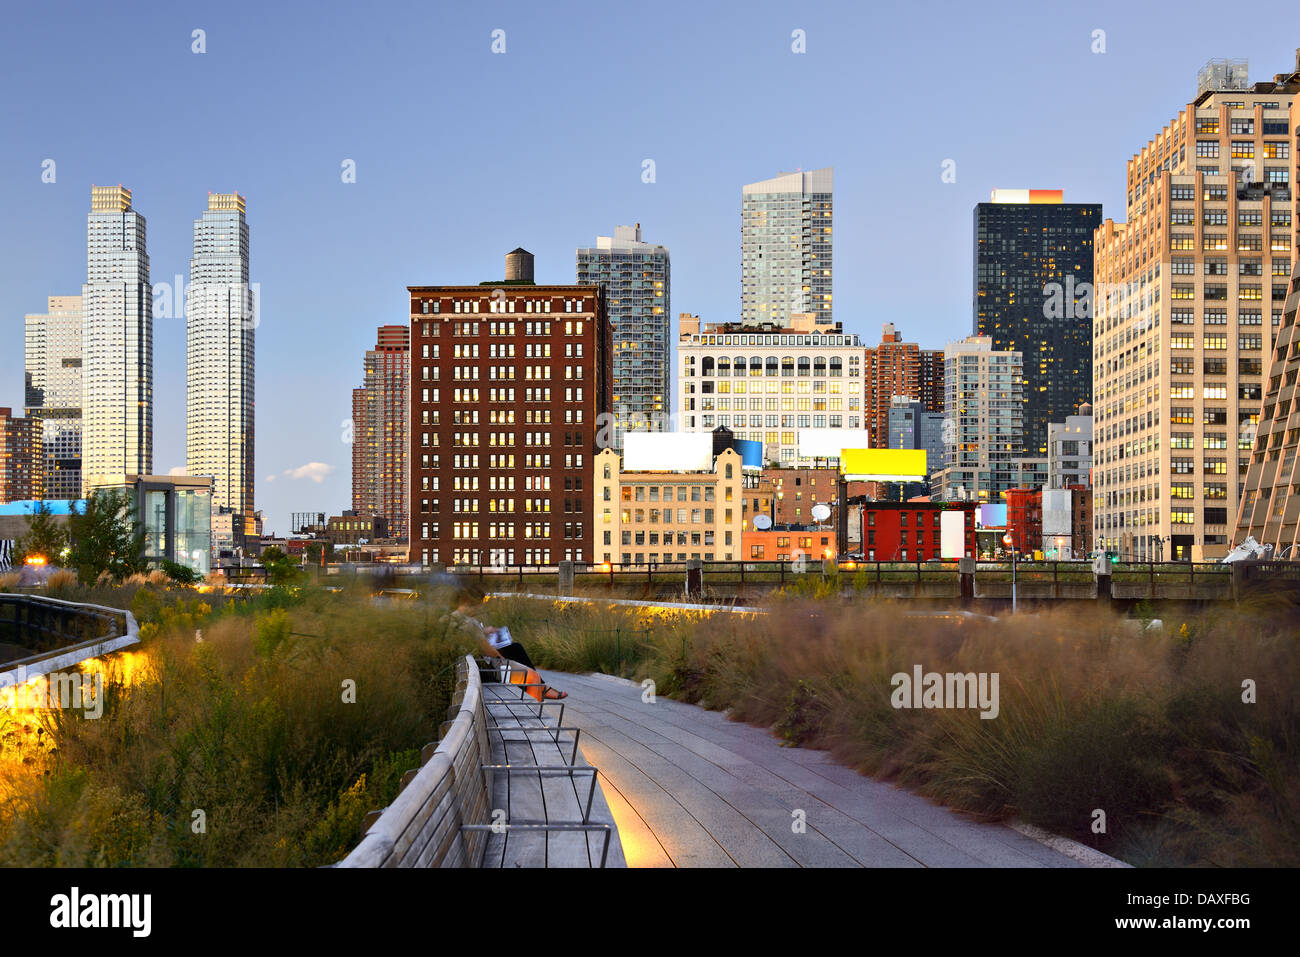 New York City High Line in der Nacht in New York City. Stockbild